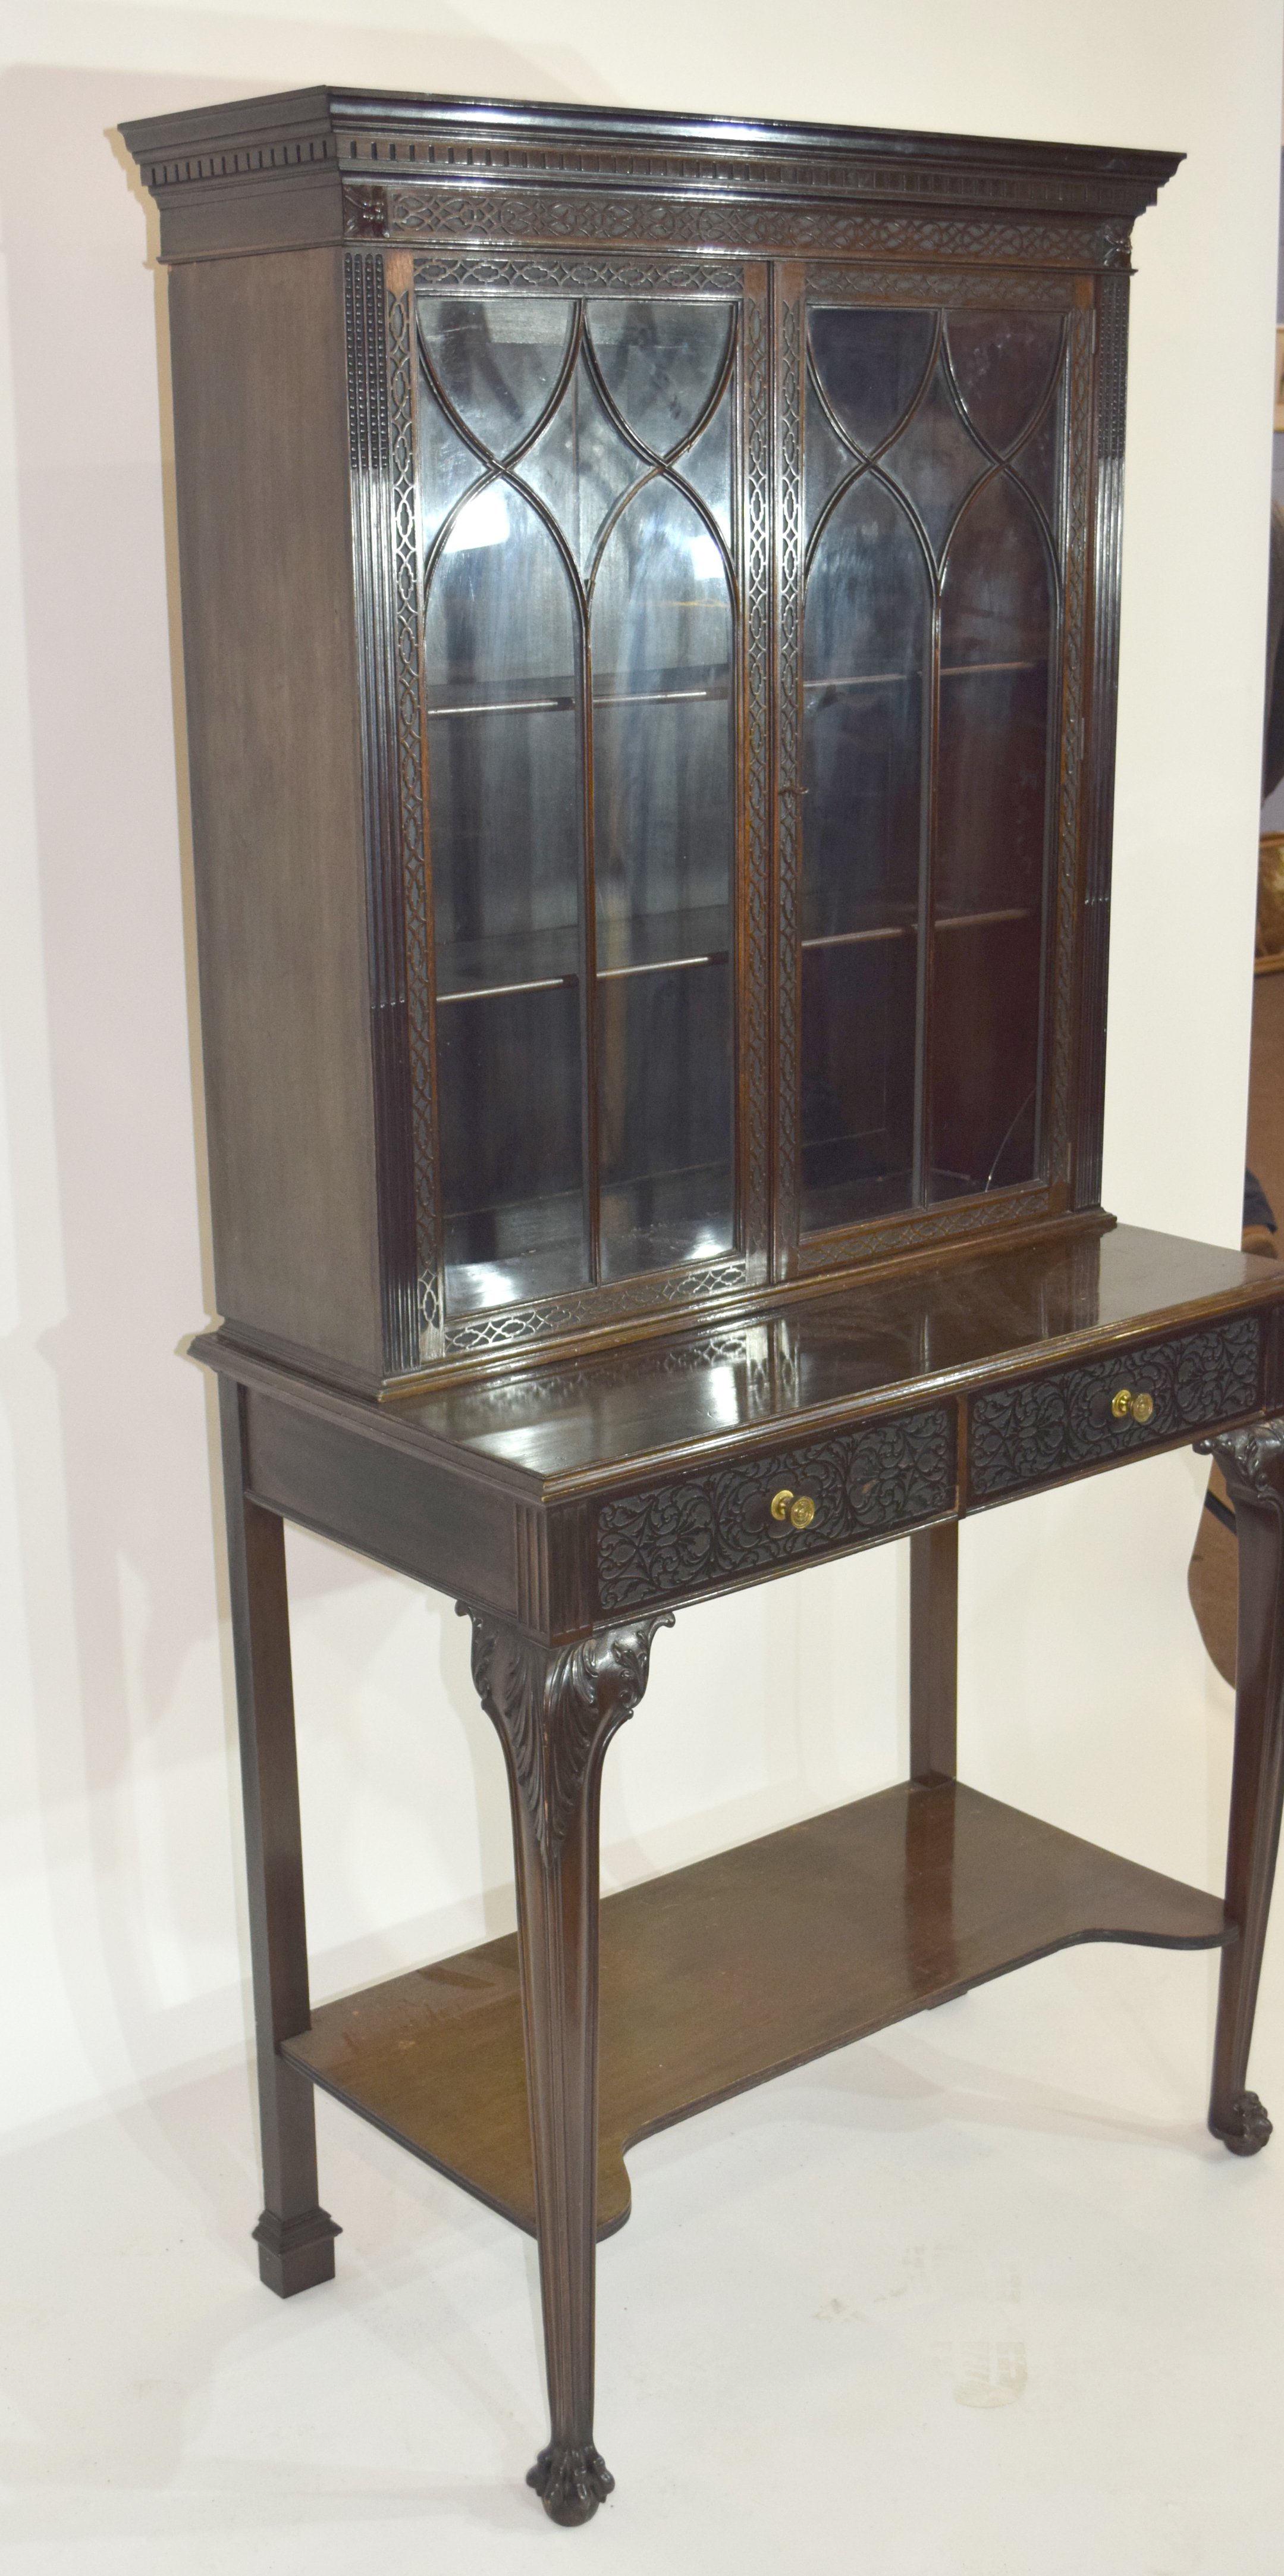 Edwardian mahogany side cabinet with shaped cornice over a top section with two glazed doors and - Image 4 of 7